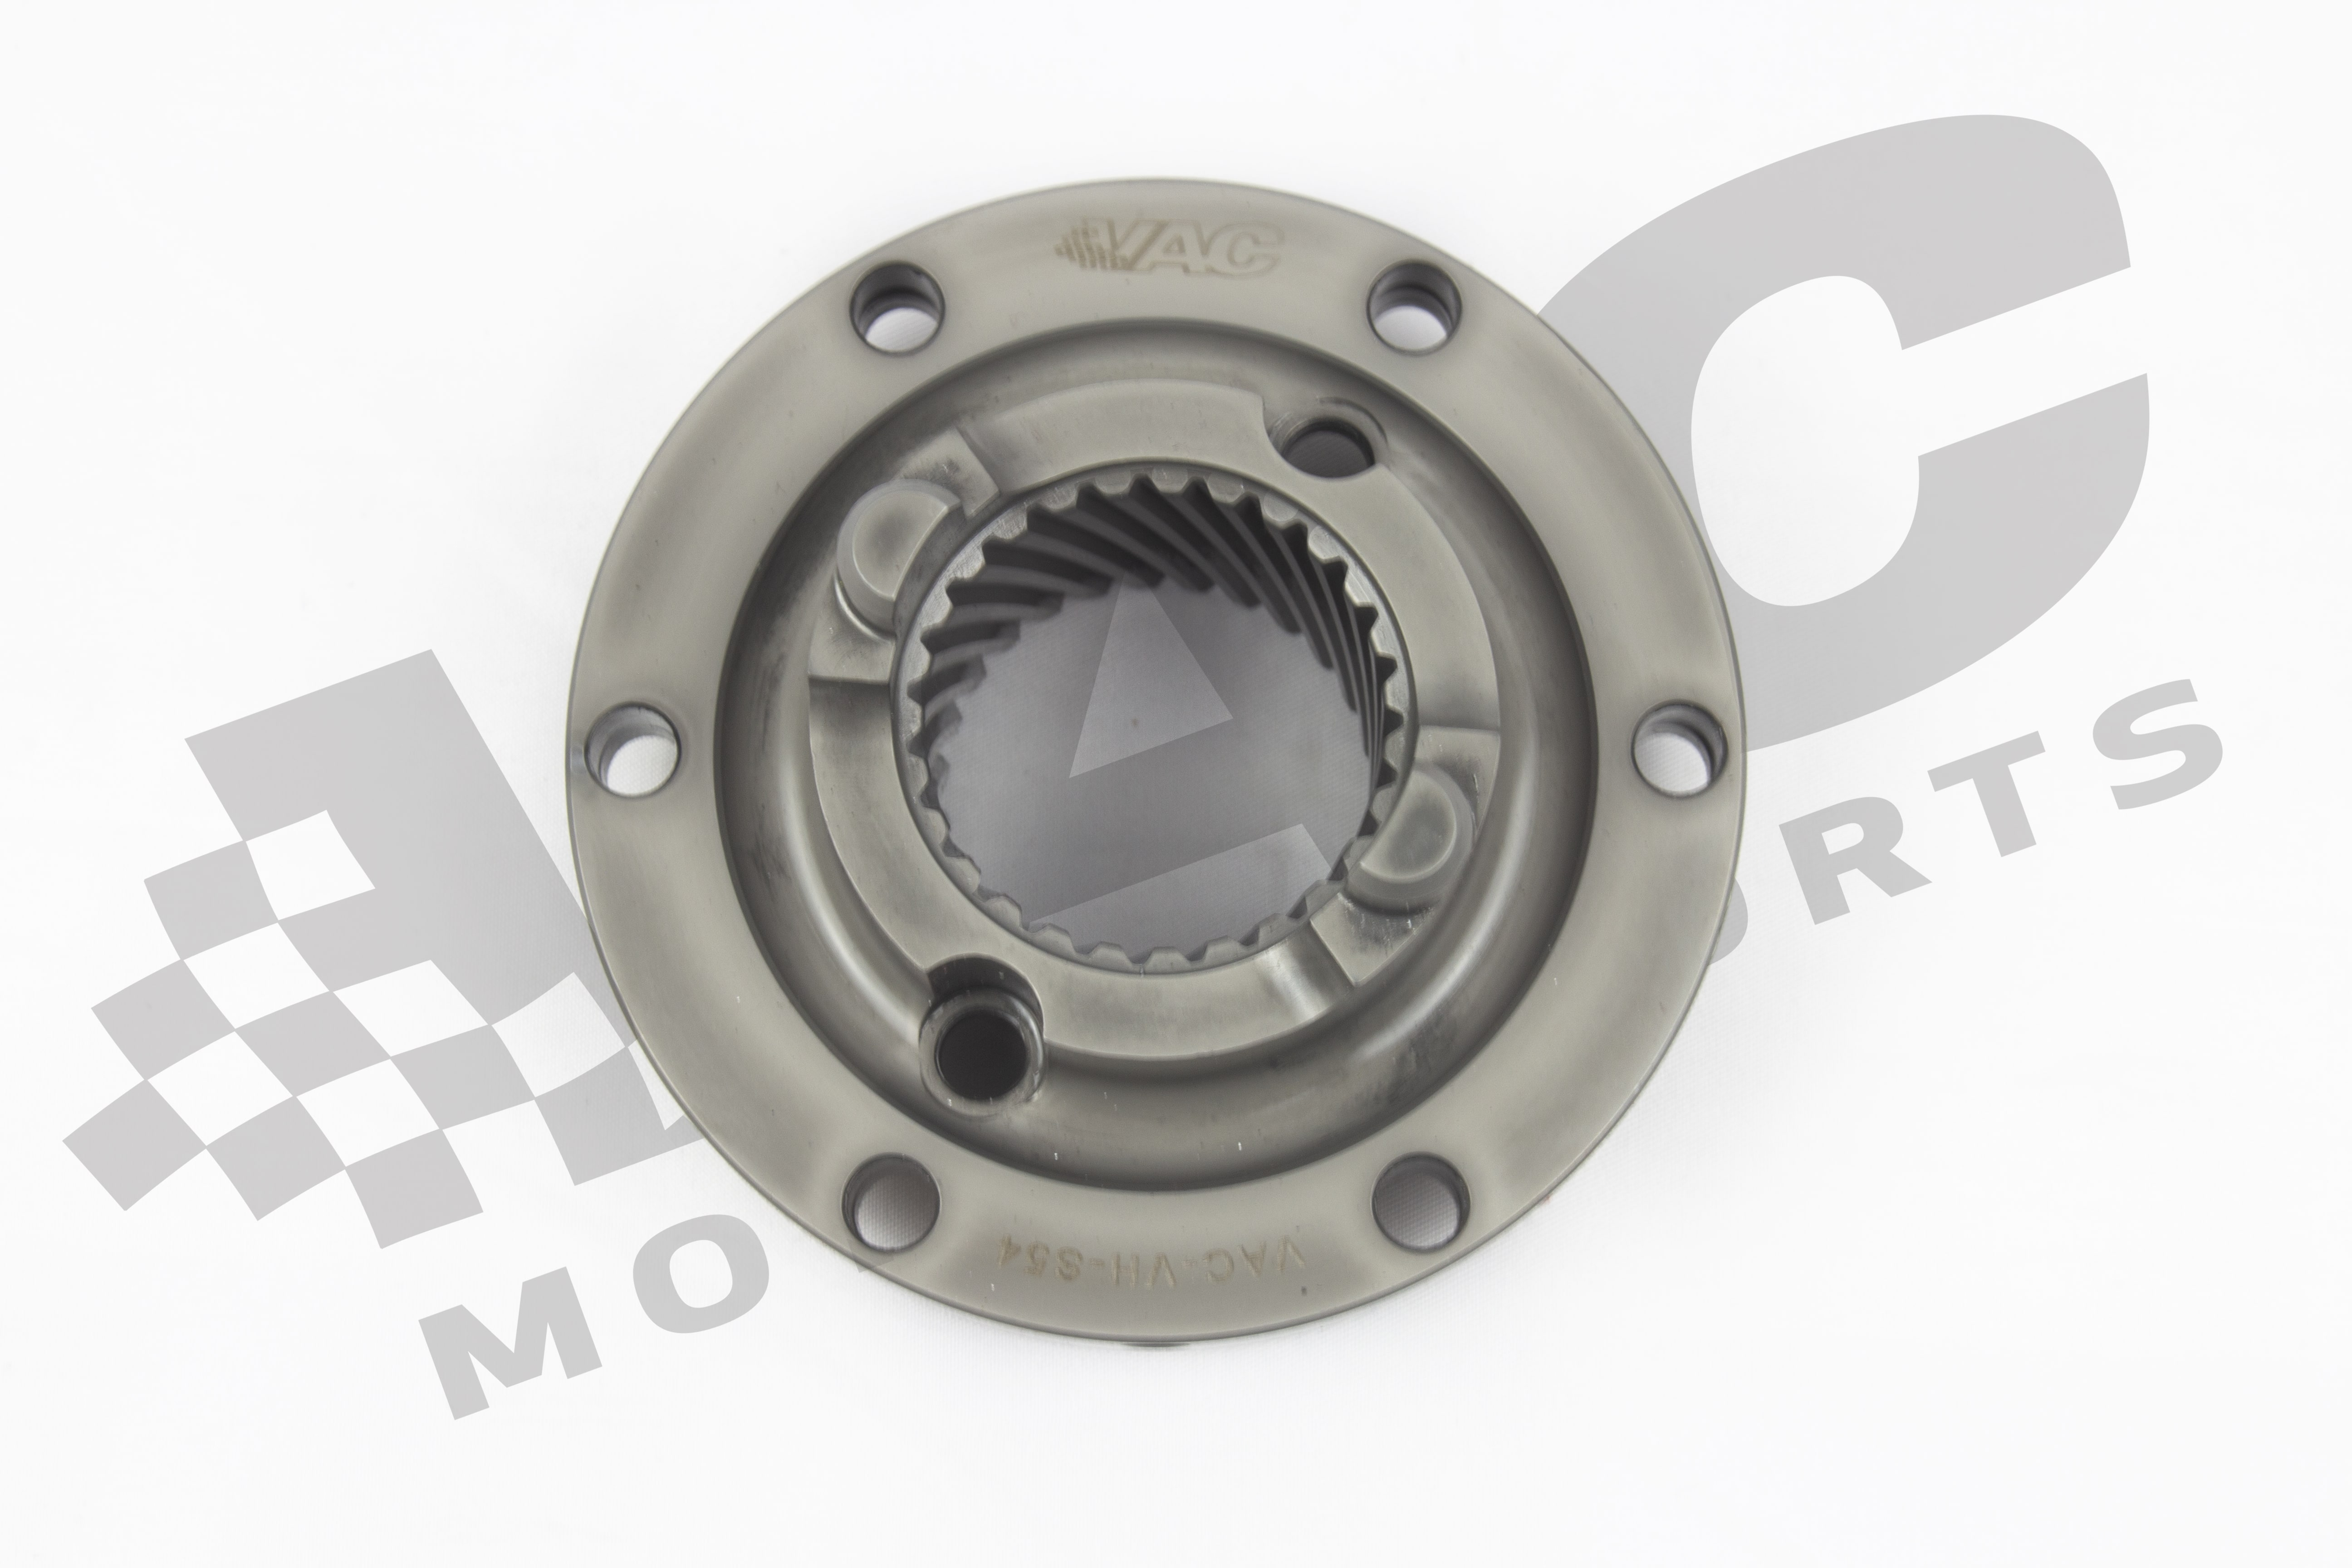 S54 Vanos Hub Upgrade MAIN